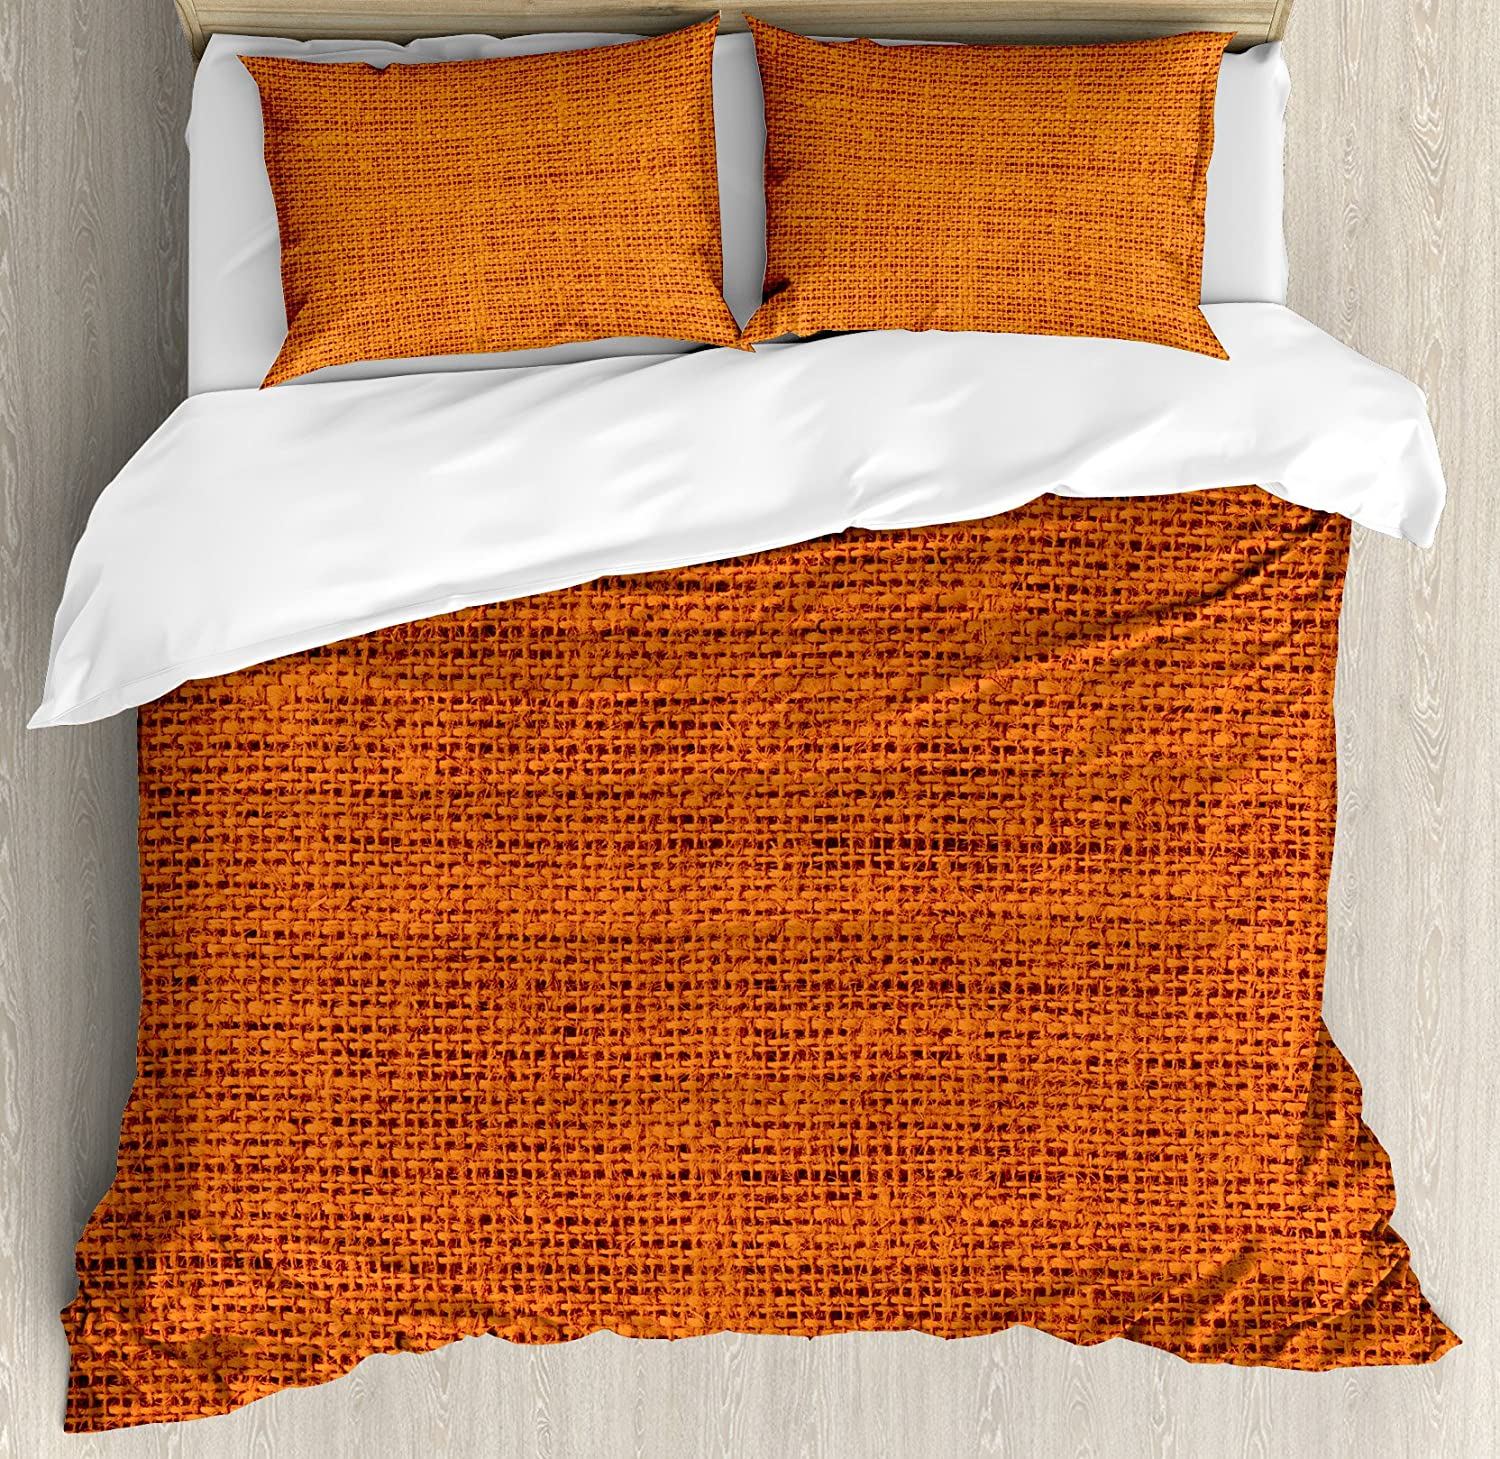 dp country fabric by orange duvet decorative cover living ambesonne thick size com set style rough texture image rustic close print up king amazon burnt